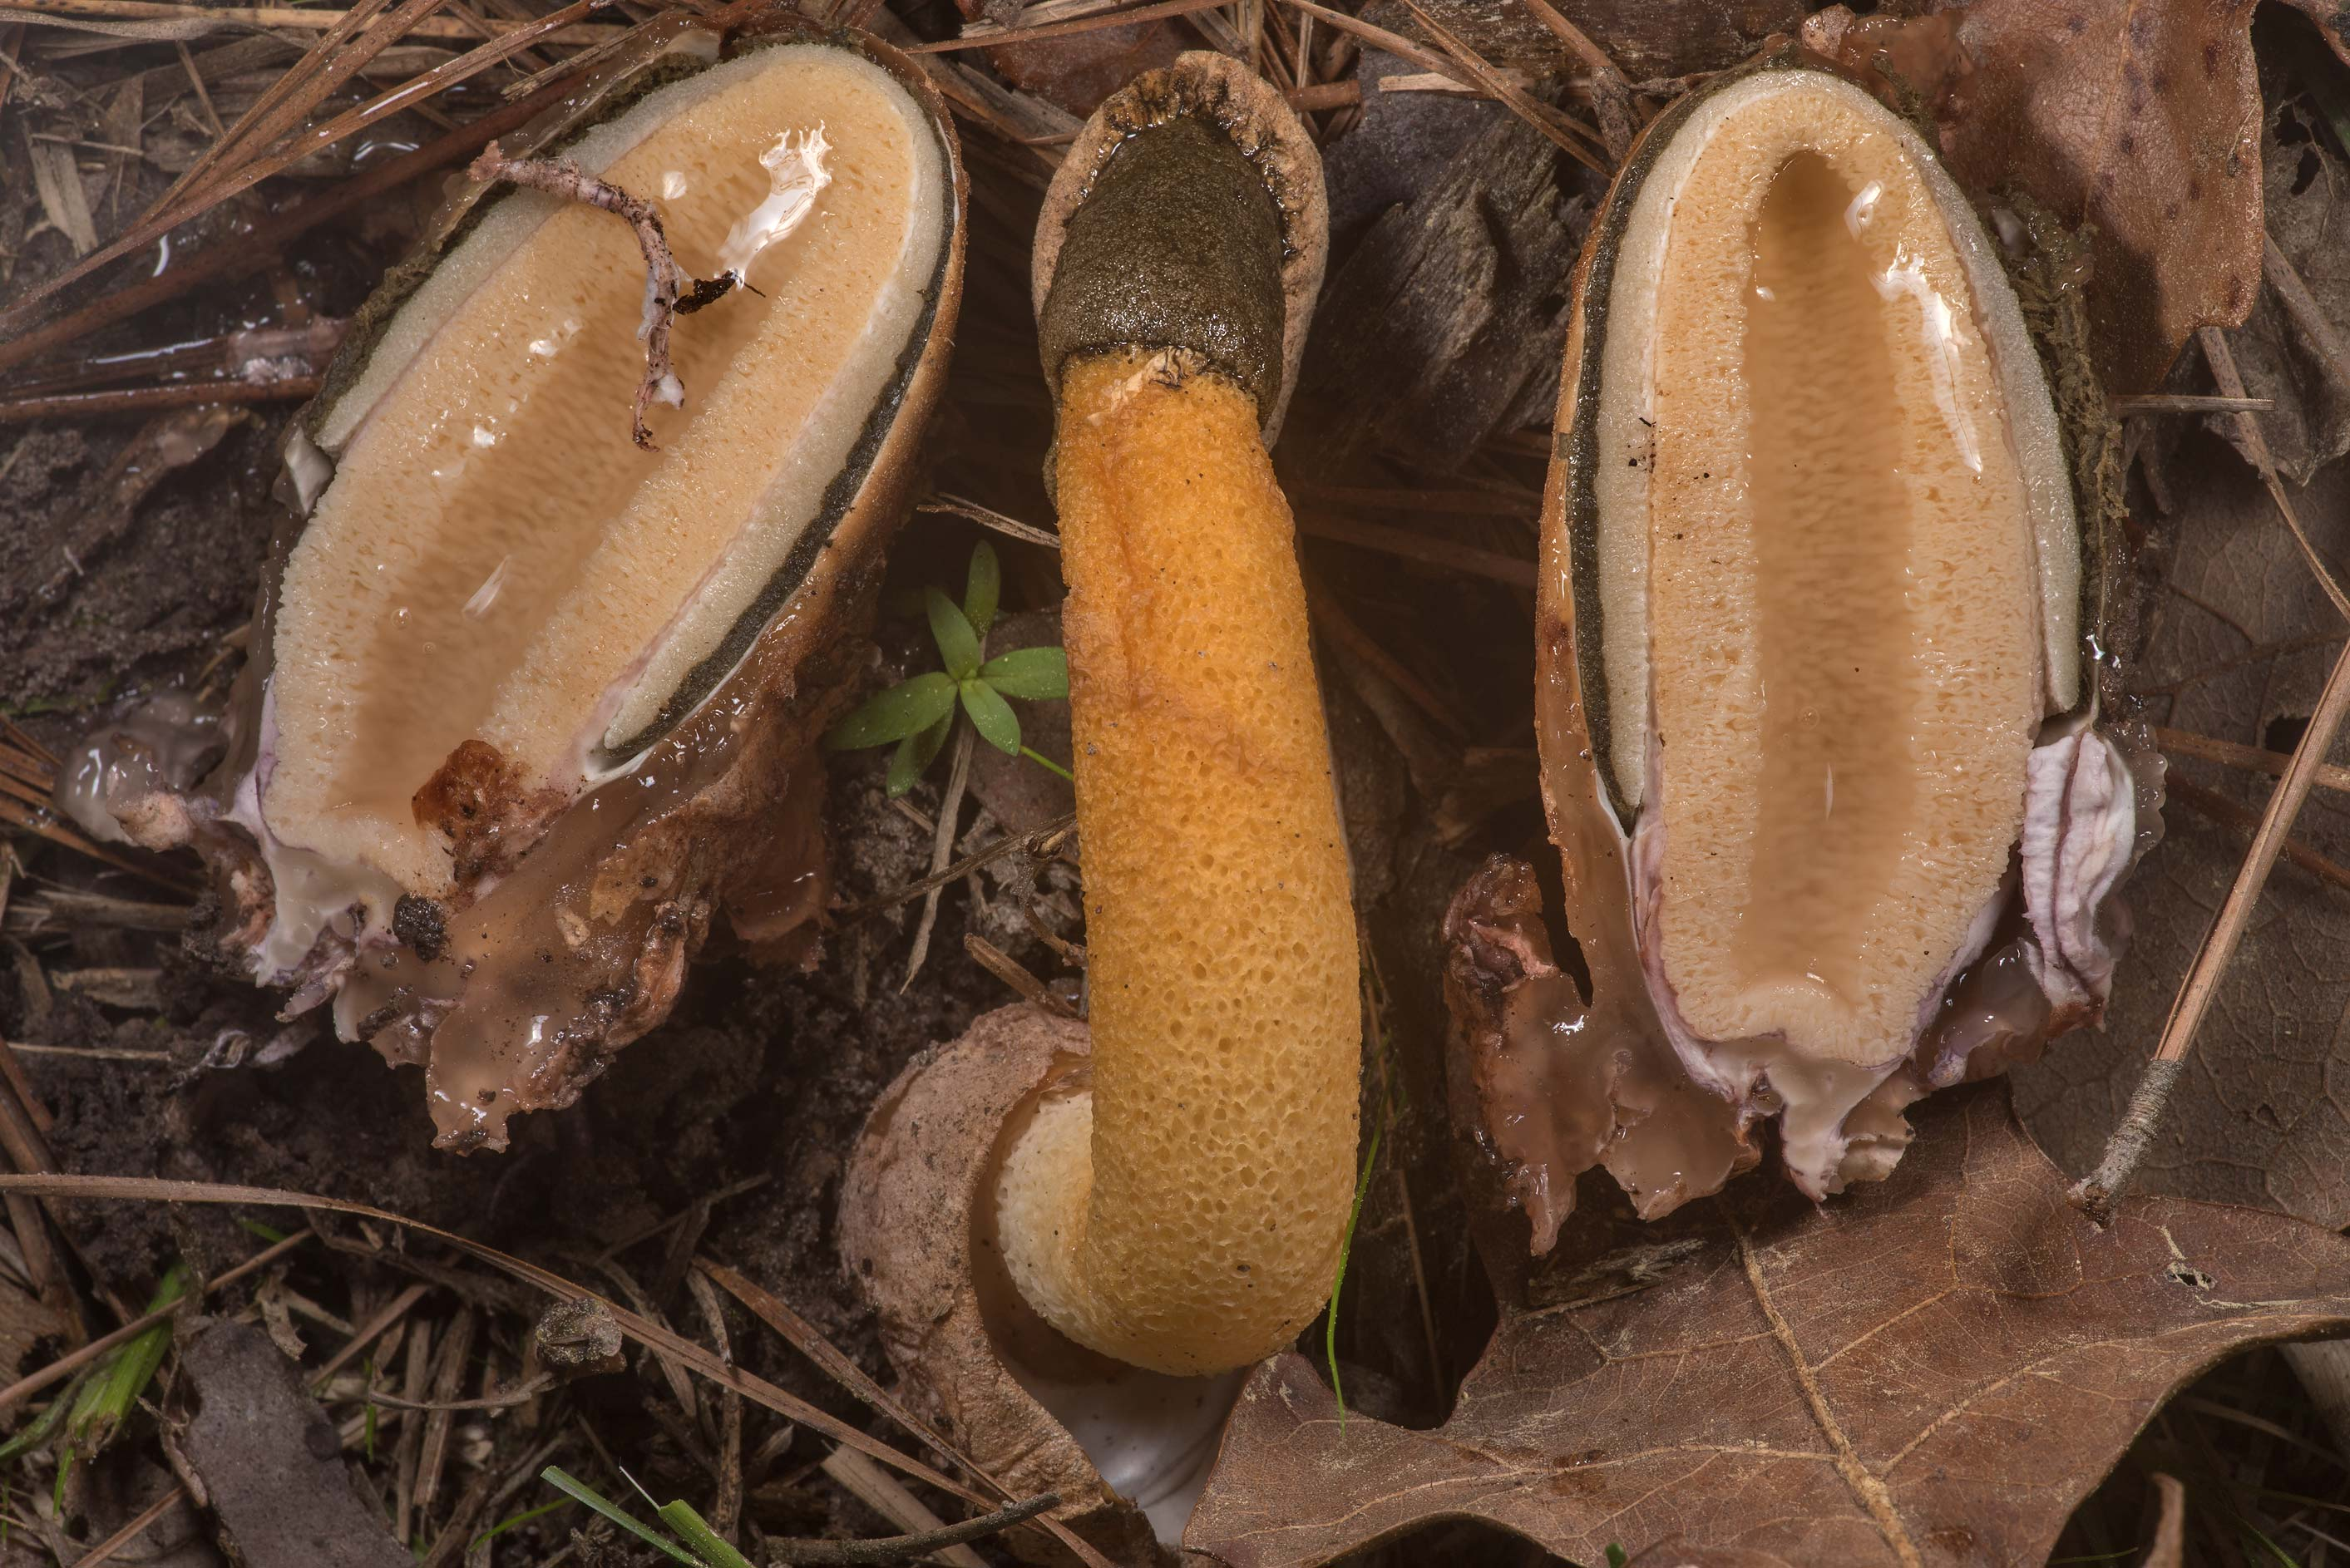 Cross section of Golden stinkhorn mushrooms...in Sam Houston National Forest. Texas